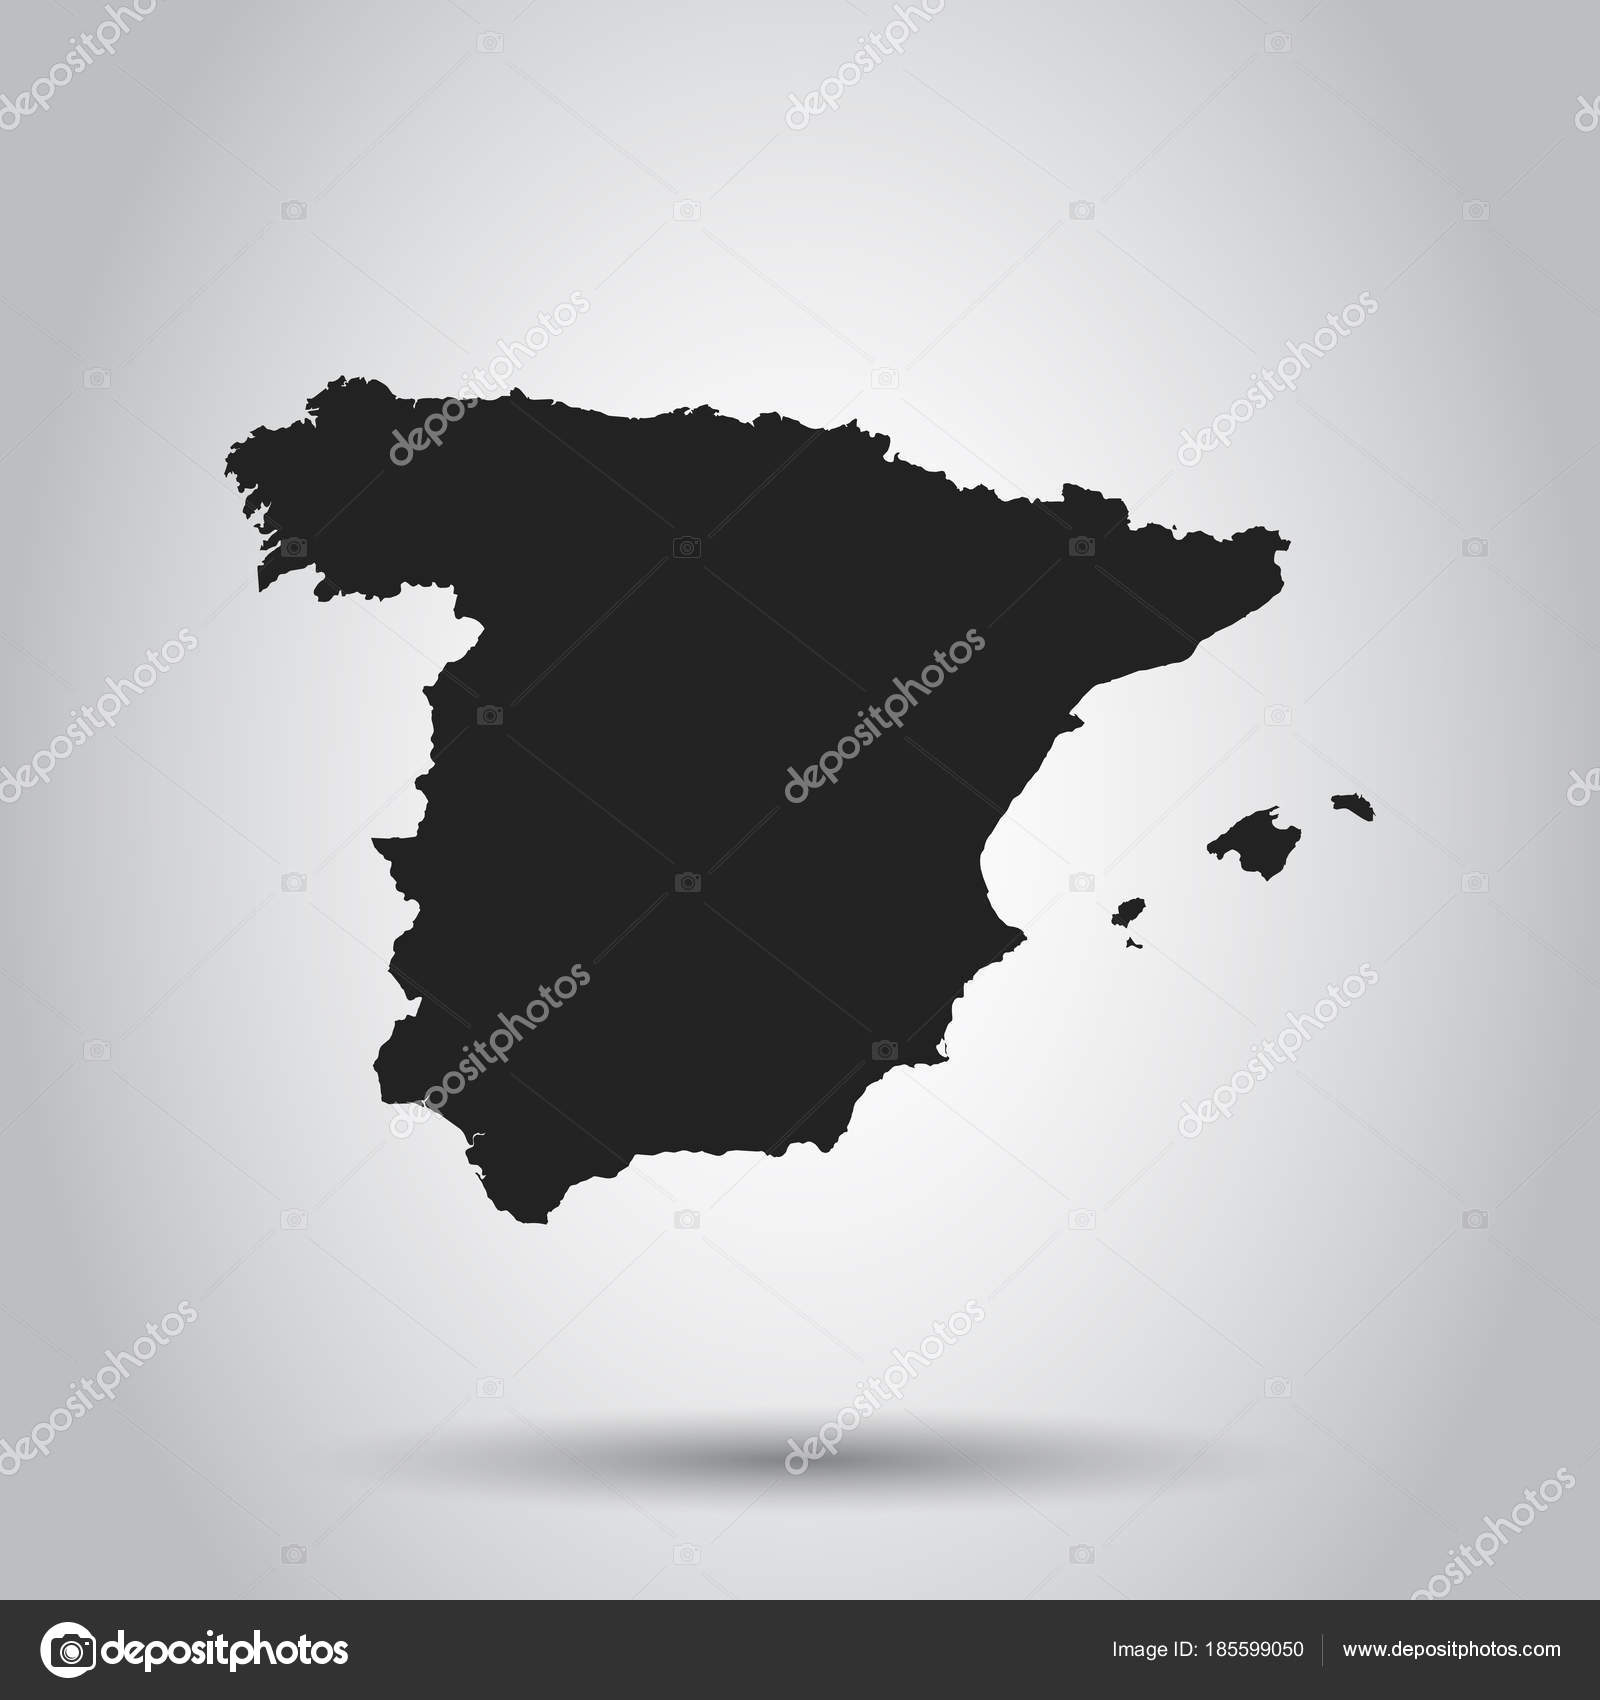 Spain vector map black icon on white background stock vector spain vector map black icon on white background stock vector gumiabroncs Image collections